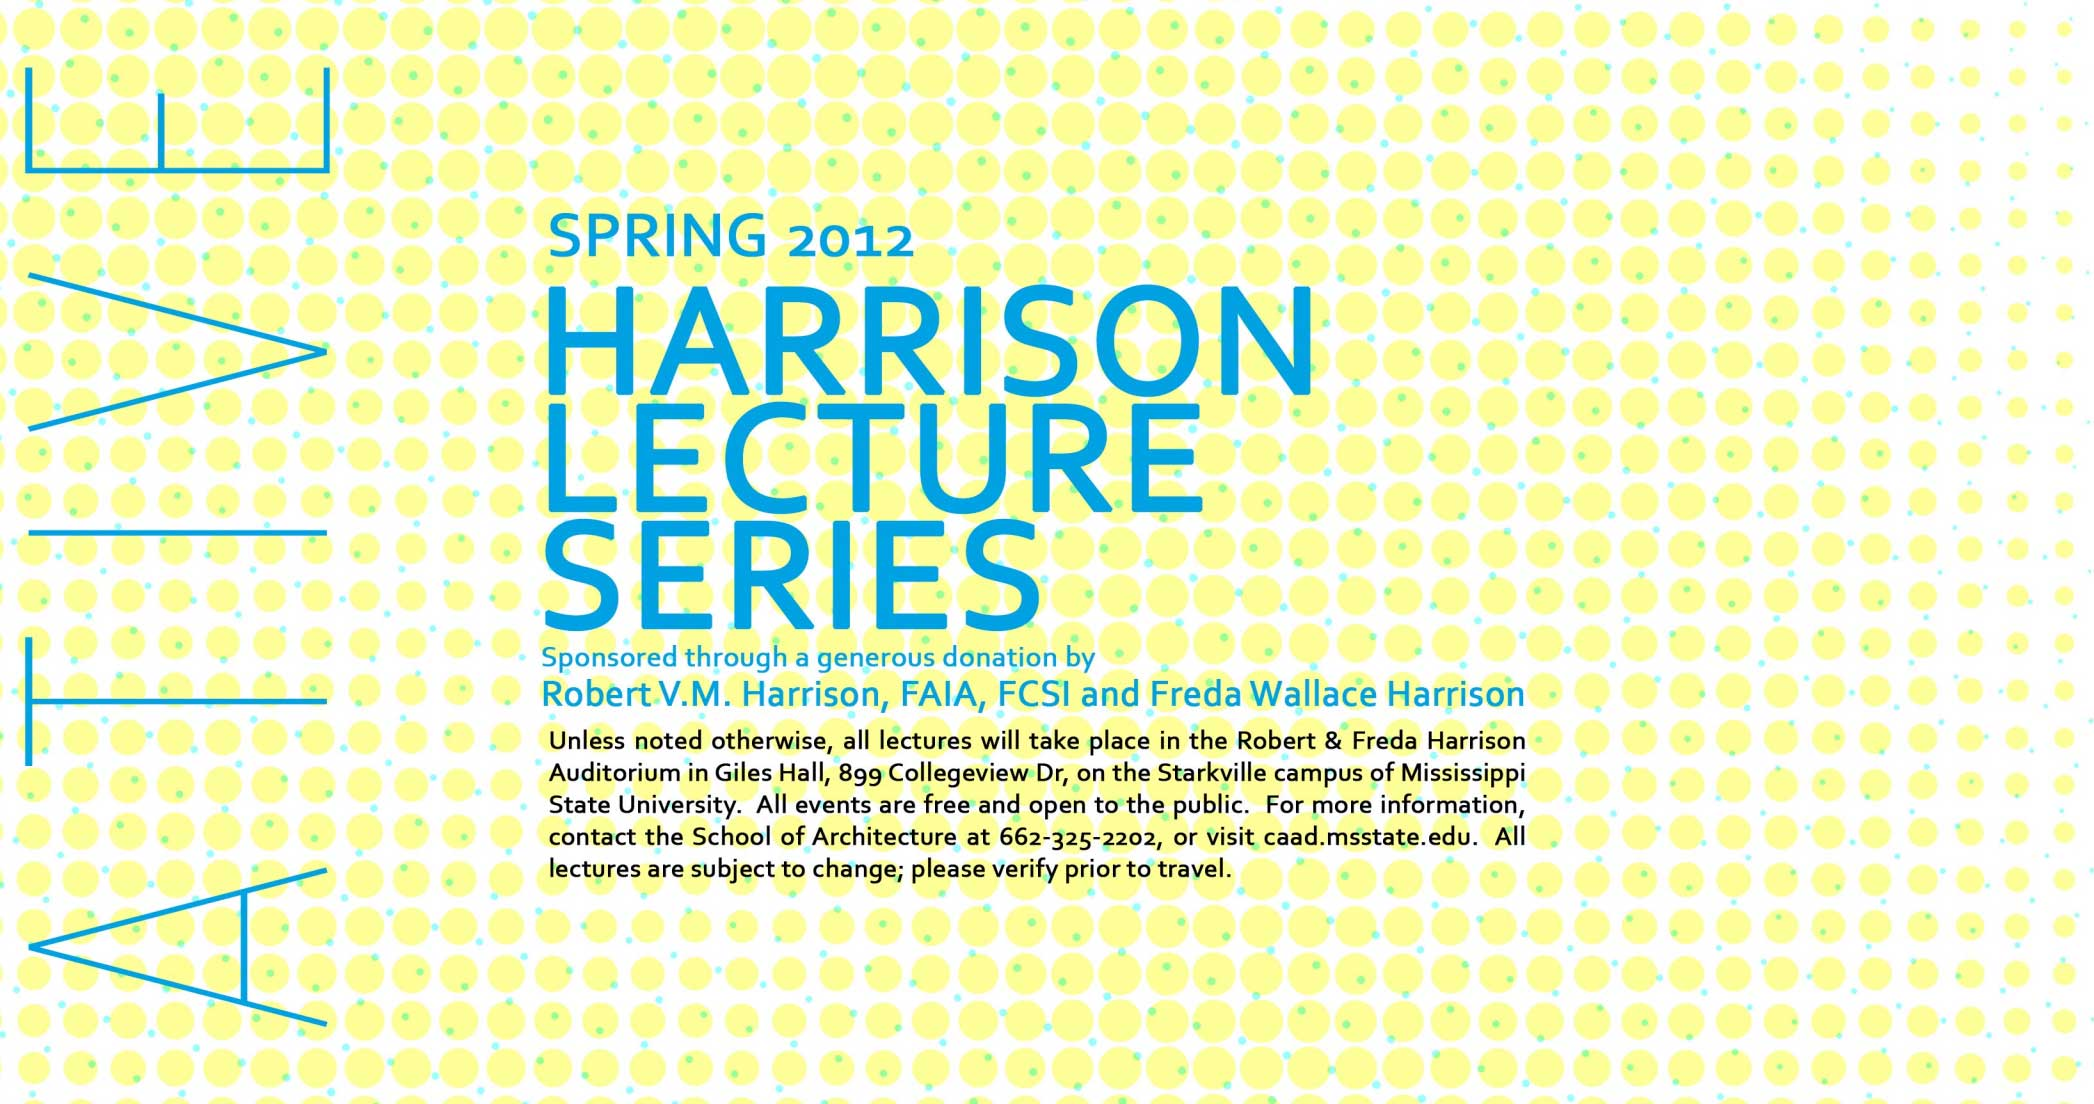 Image of poster from Harrison Lecture Series - Spring 2012